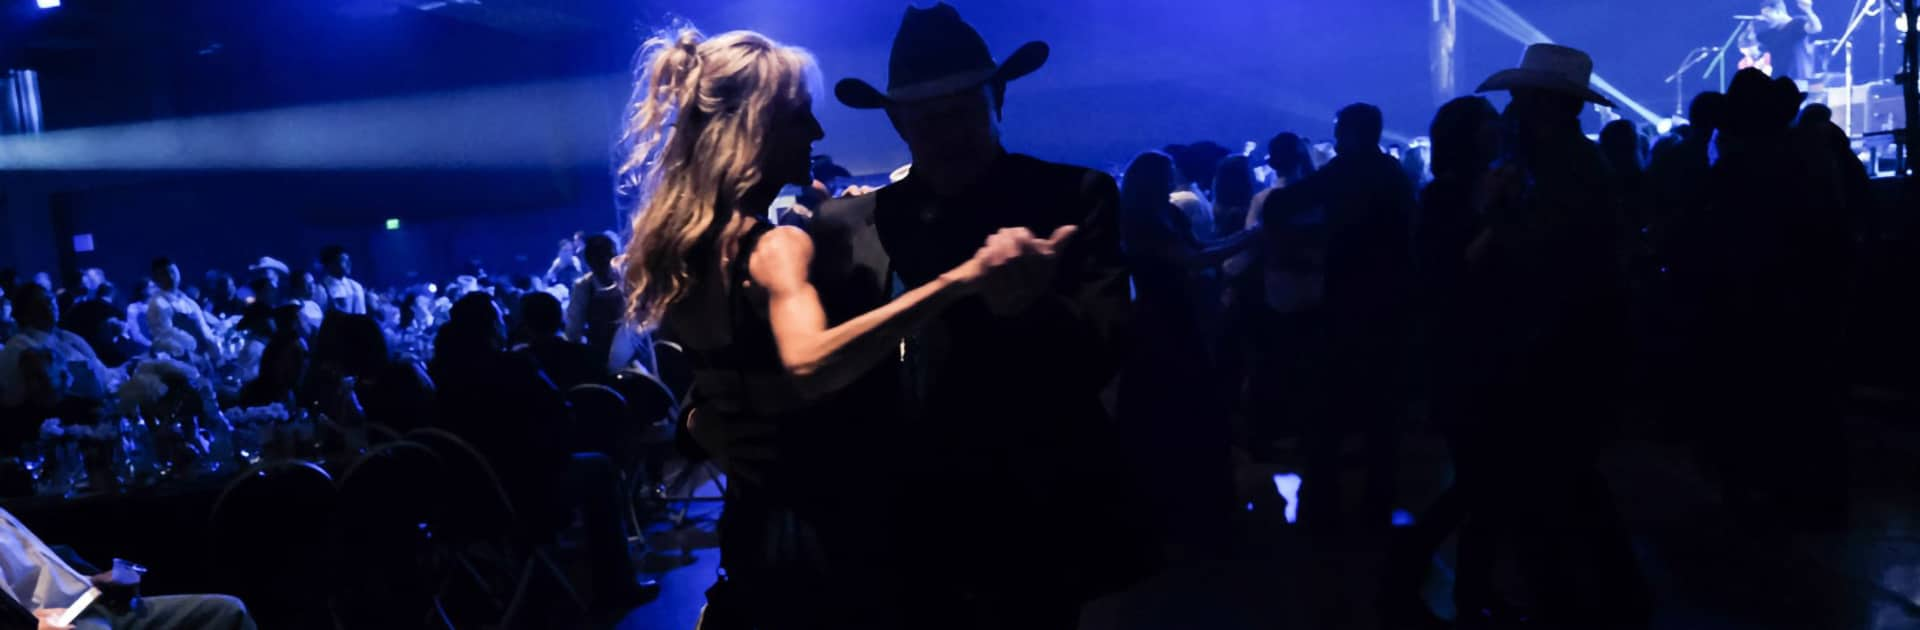 couple dancing at Rodeo Austin Gala 2020